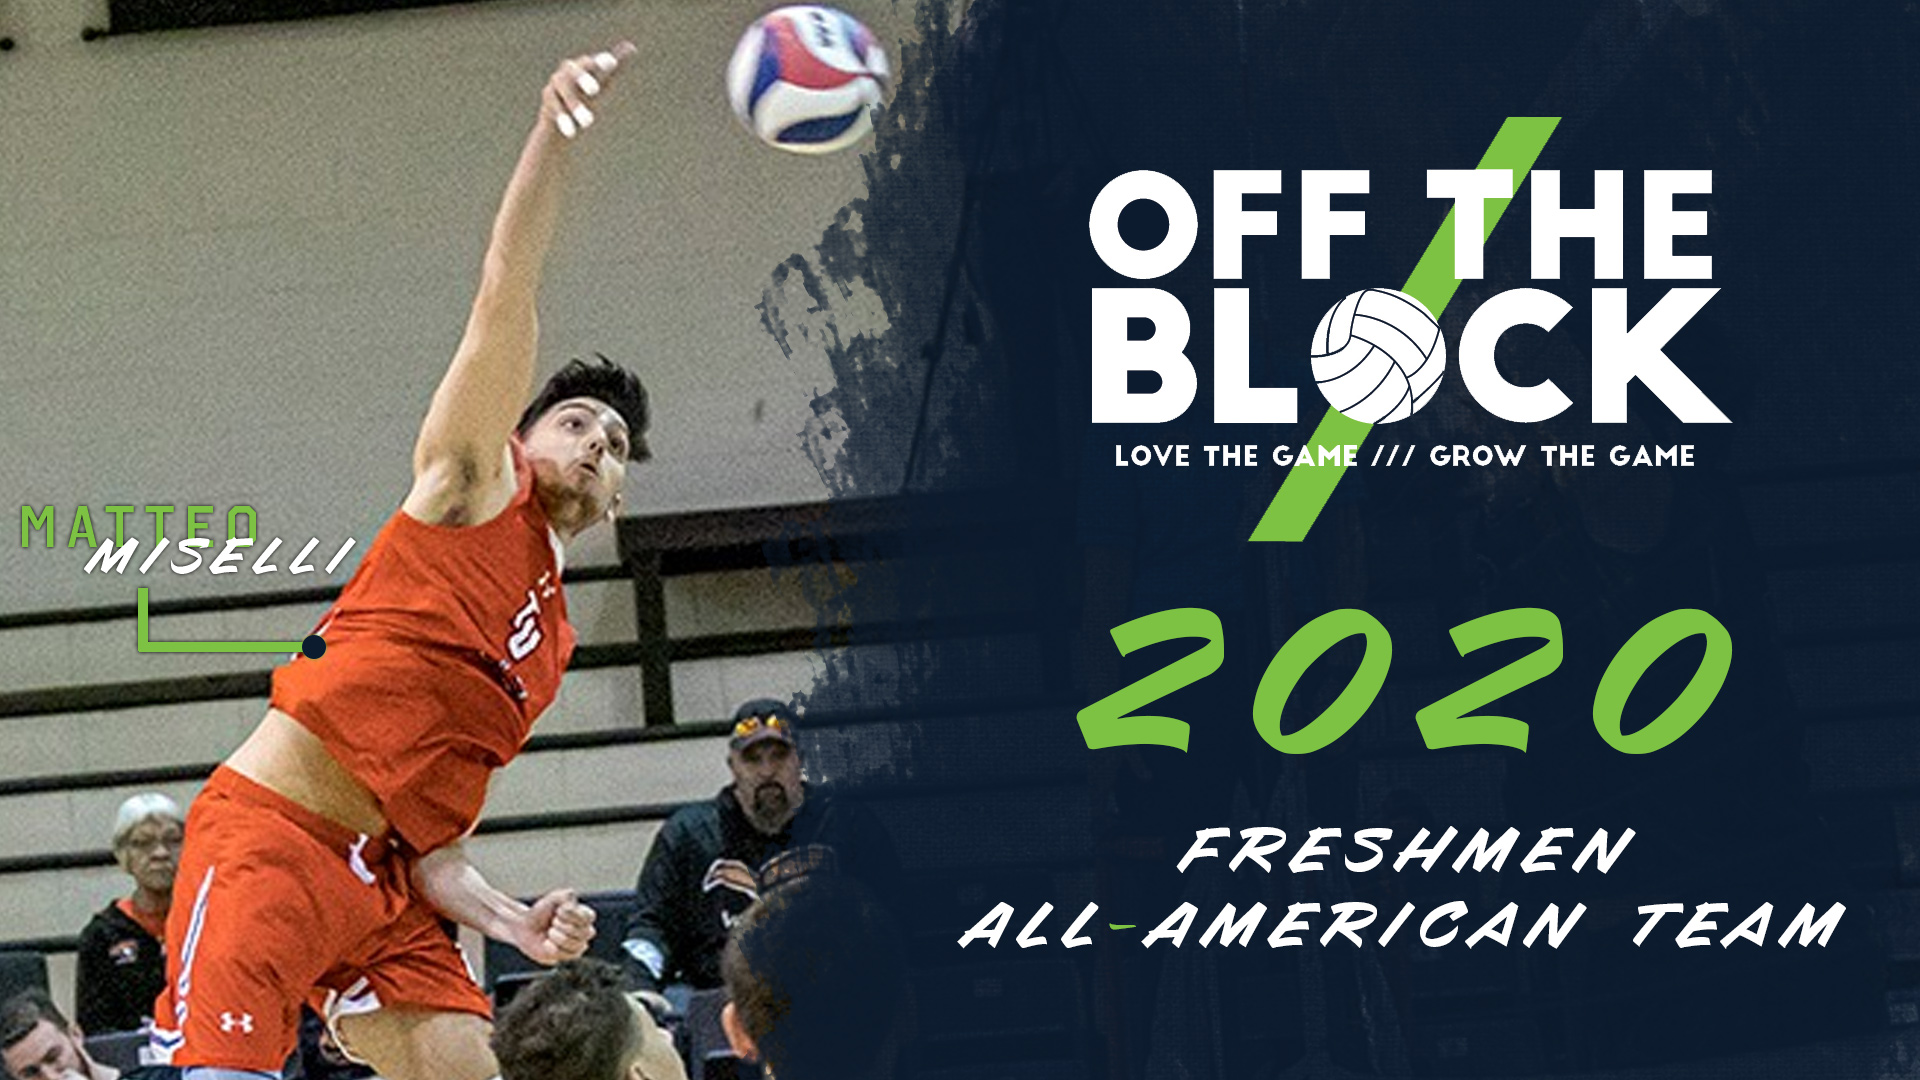 Miselli Selected to Off the Block Freshmen All-American Team